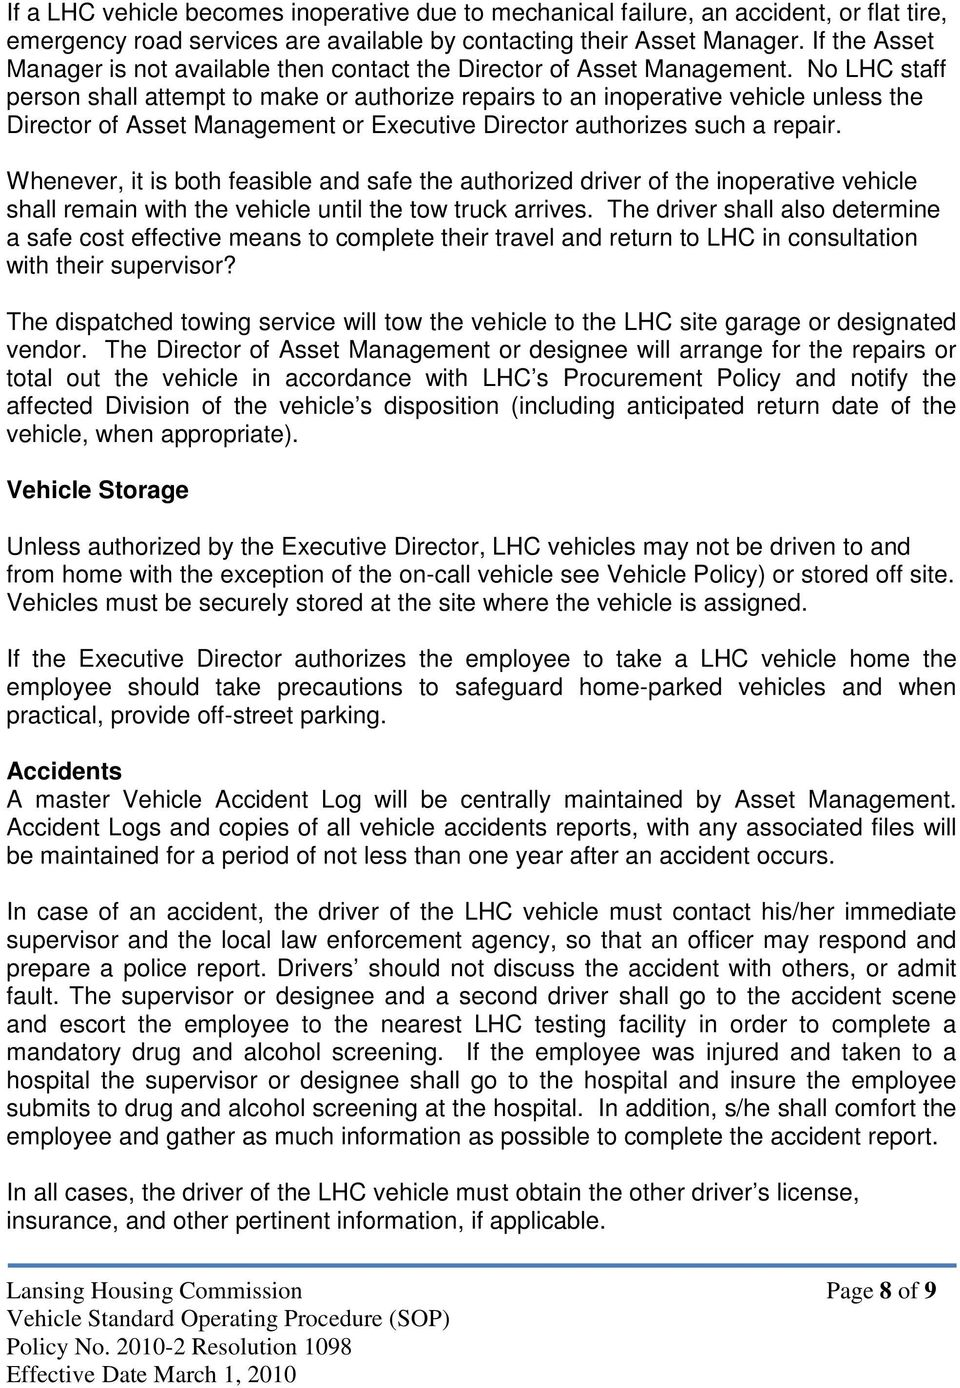 No LHC staff person shall attempt to make or authorize repairs to an inoperative vehicle unless the Director of Asset Management or Executive Director authorizes such a repair.